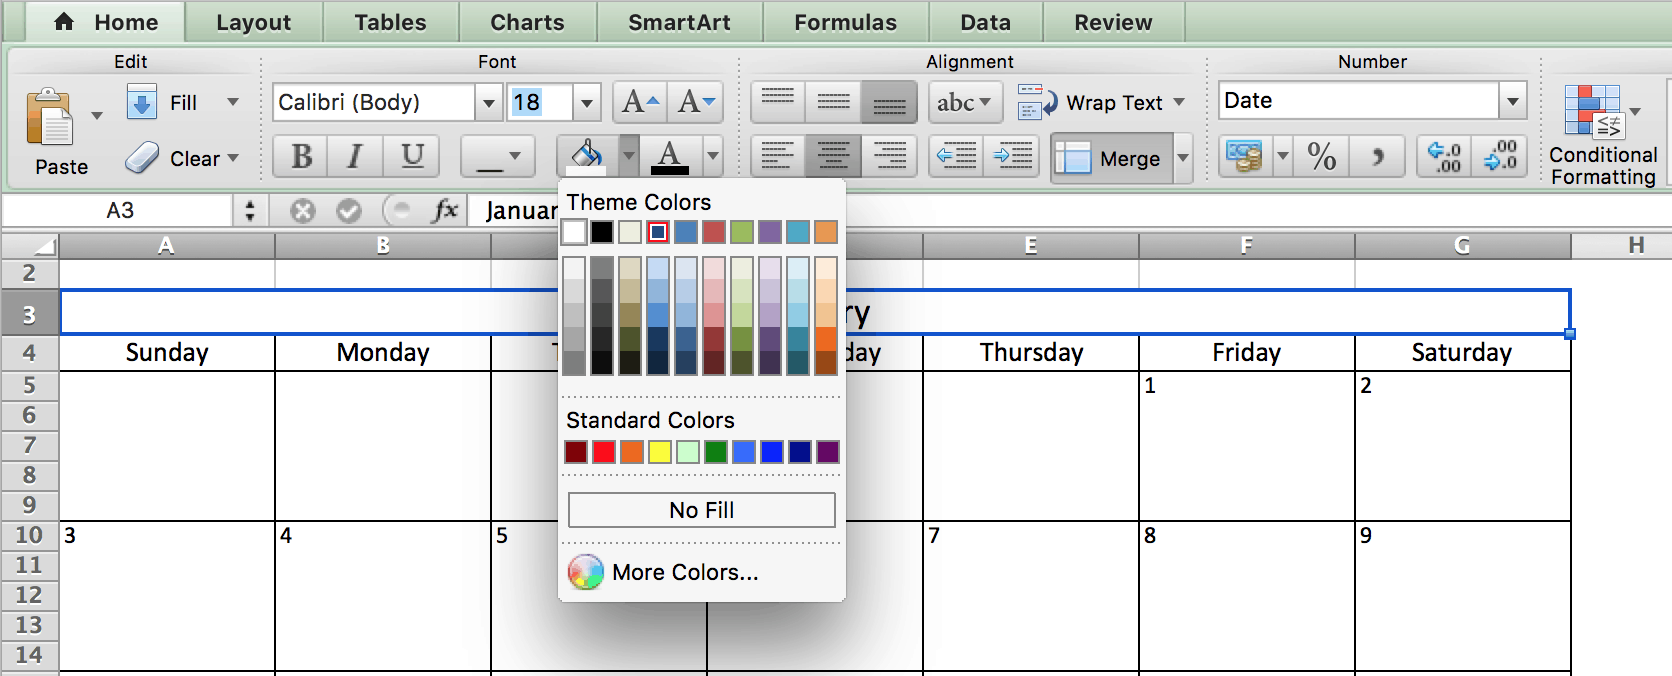 Ediblewildsus  Pretty Make A  Calendar In Excel Includes Free Template With Exciting Choosing Colors  Calendar In Excel With Awesome Excel Trim String Also Microsoft Excel Test Prep In Addition Hotels Near Excel Center And Lookup Multiple Values In Excel As Well As Zip Code List Excel Additionally Payment Schedule Excel From Smartsheetcom With Ediblewildsus  Exciting Make A  Calendar In Excel Includes Free Template With Awesome Choosing Colors  Calendar In Excel And Pretty Excel Trim String Also Microsoft Excel Test Prep In Addition Hotels Near Excel Center From Smartsheetcom